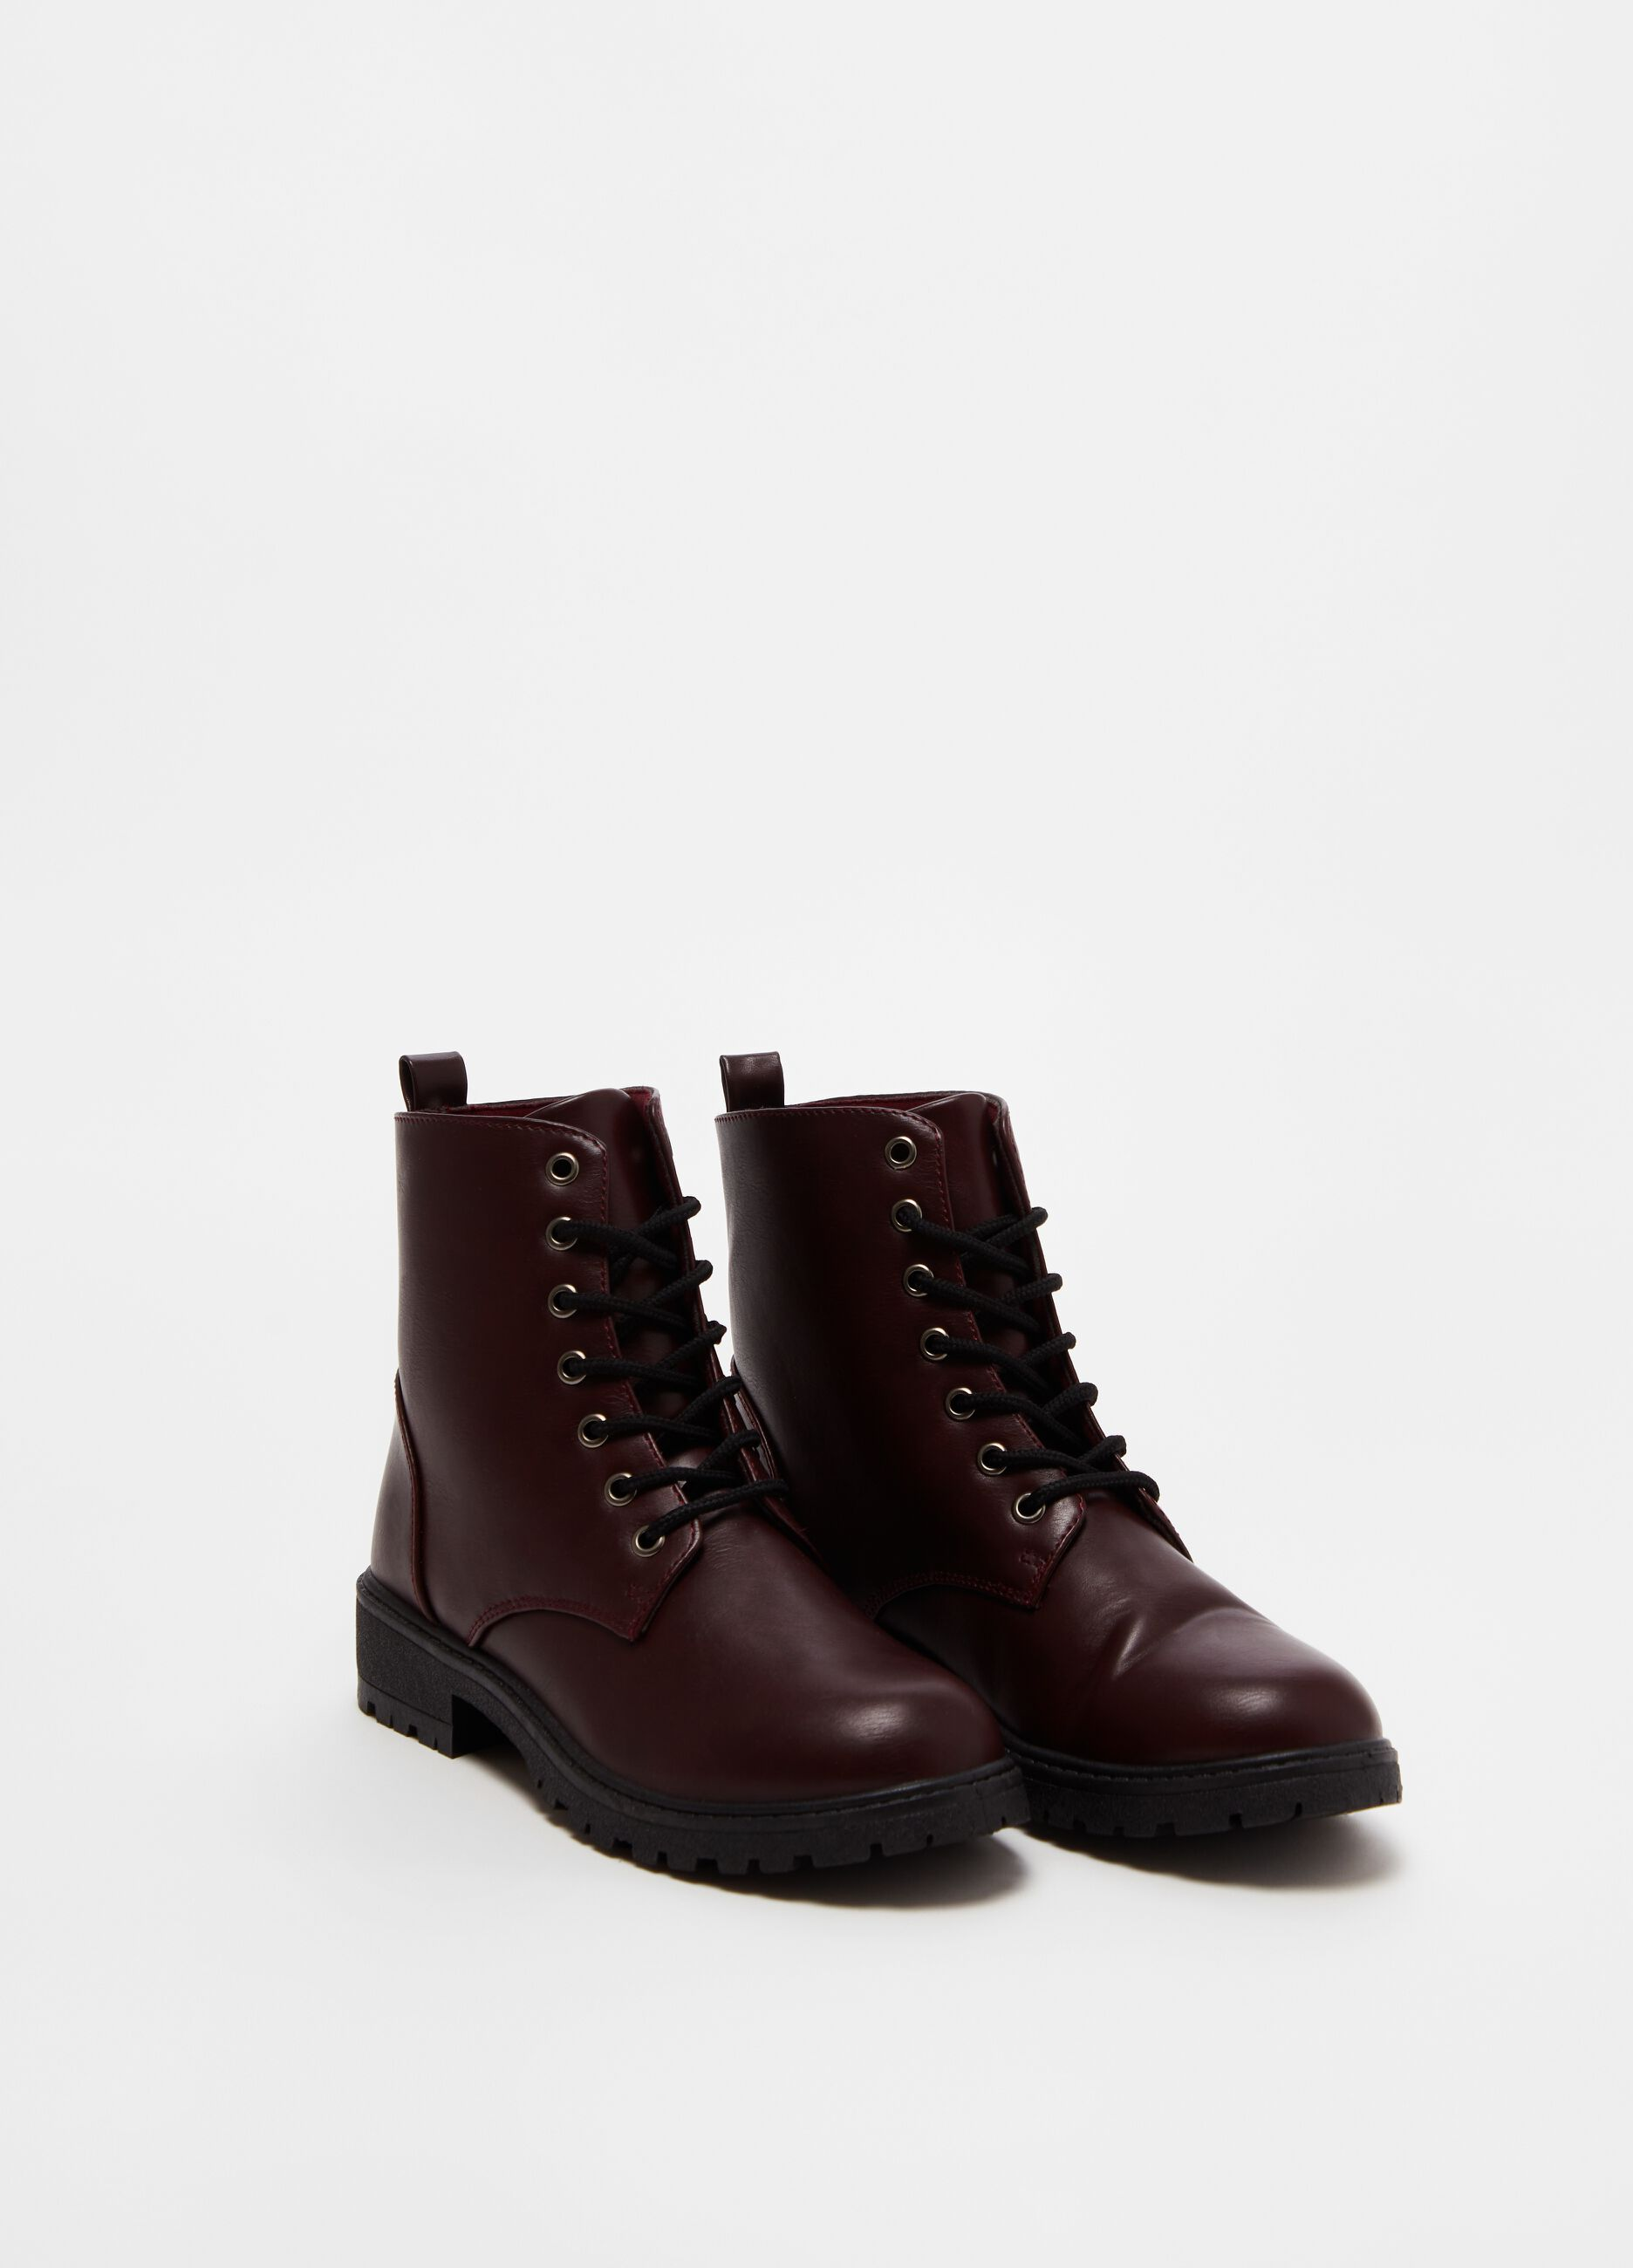 Faux leather combat boots with laces